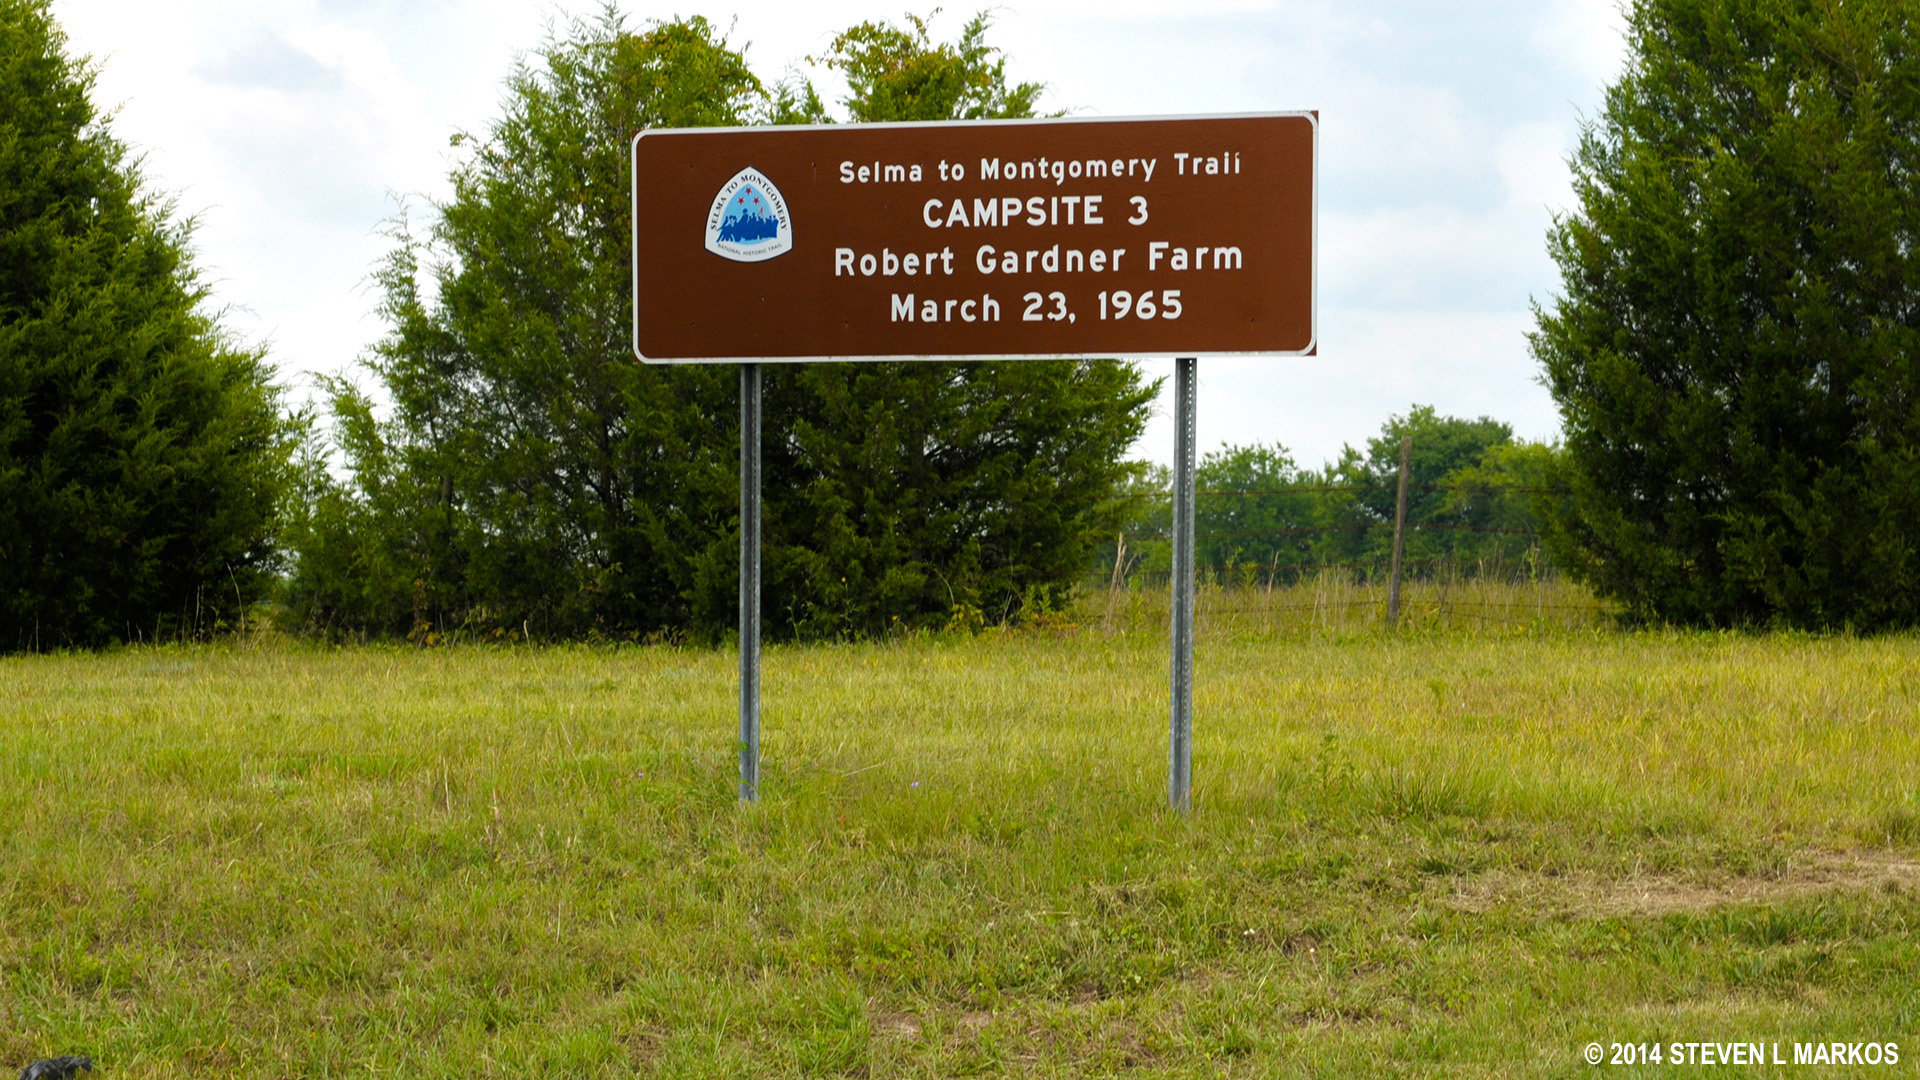 The third campsite used by the marchers was the Robert Gardner Farm On Highway 80.  This campsite along with three others was prearranged to provide the marchers a place to rest and to tend to any wounds.